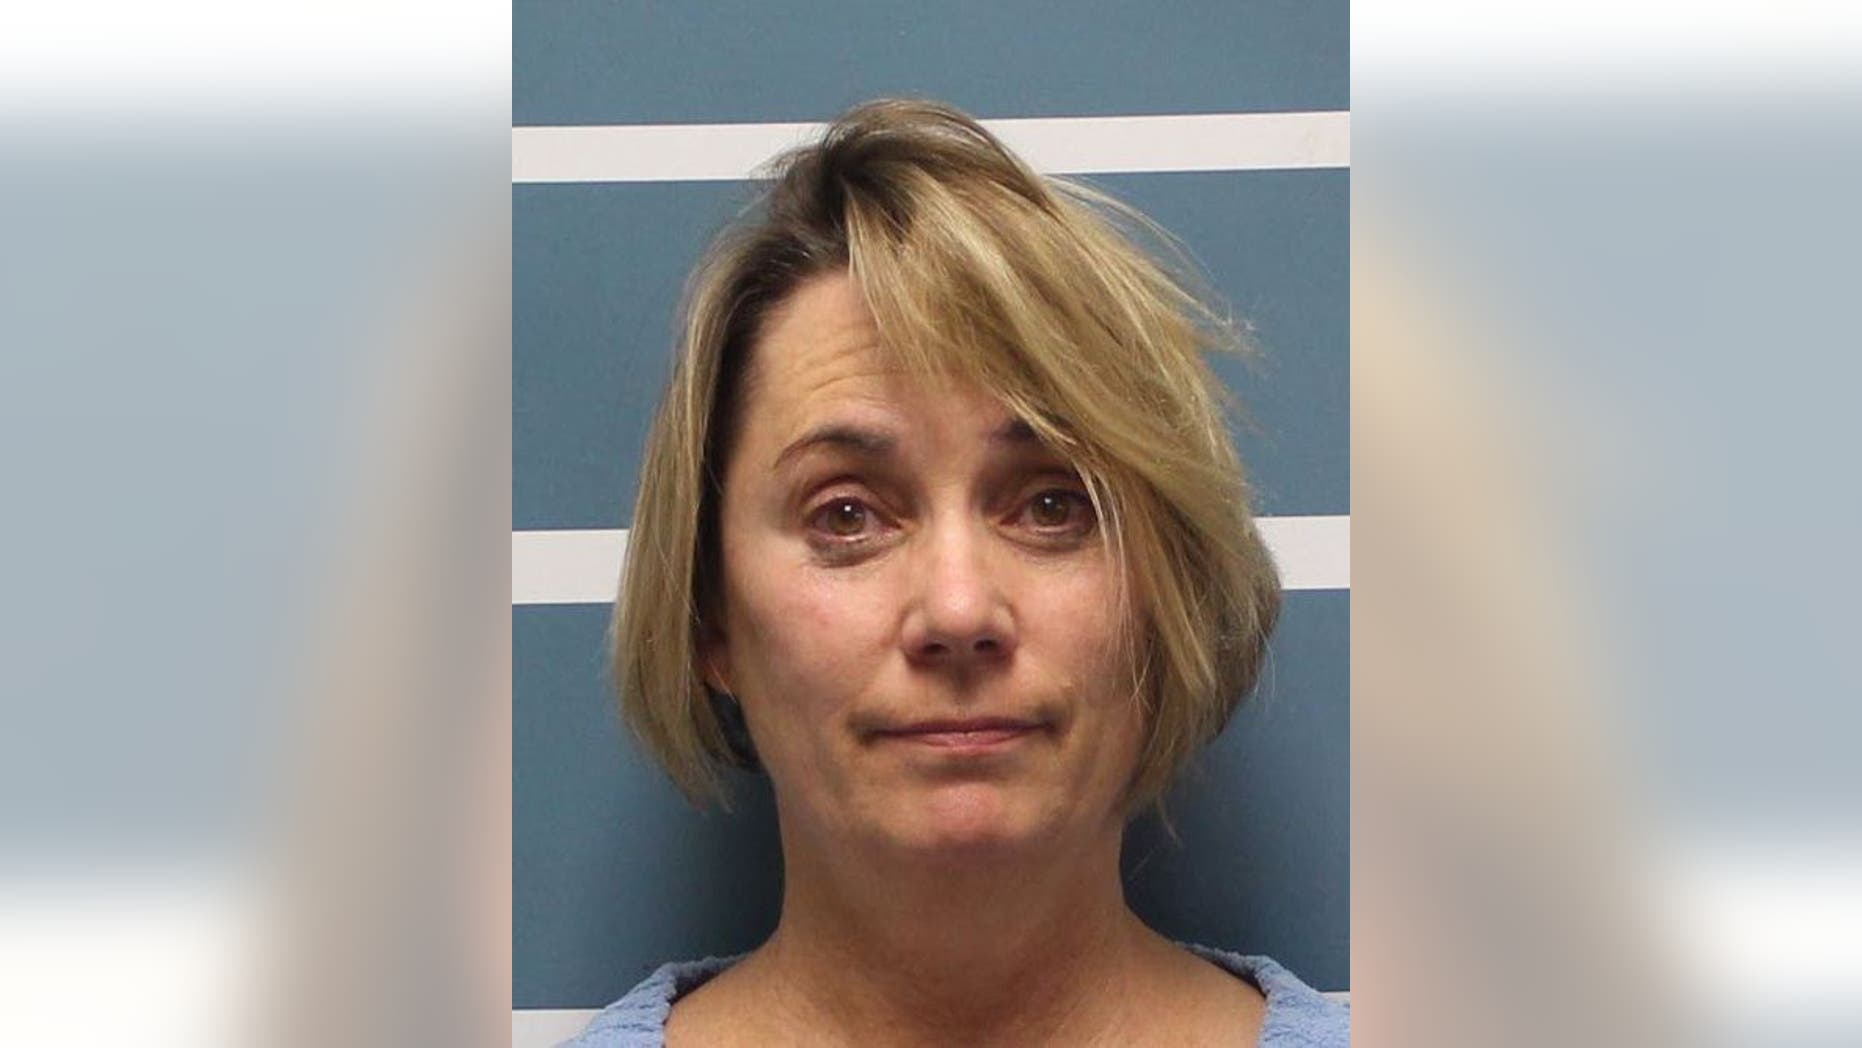 """Margaret Gieszinger, 52, was arrested after she was seemingly caught in a video cutting a student's hair while incorrectly singing """"The Star-Spangled Banner."""""""